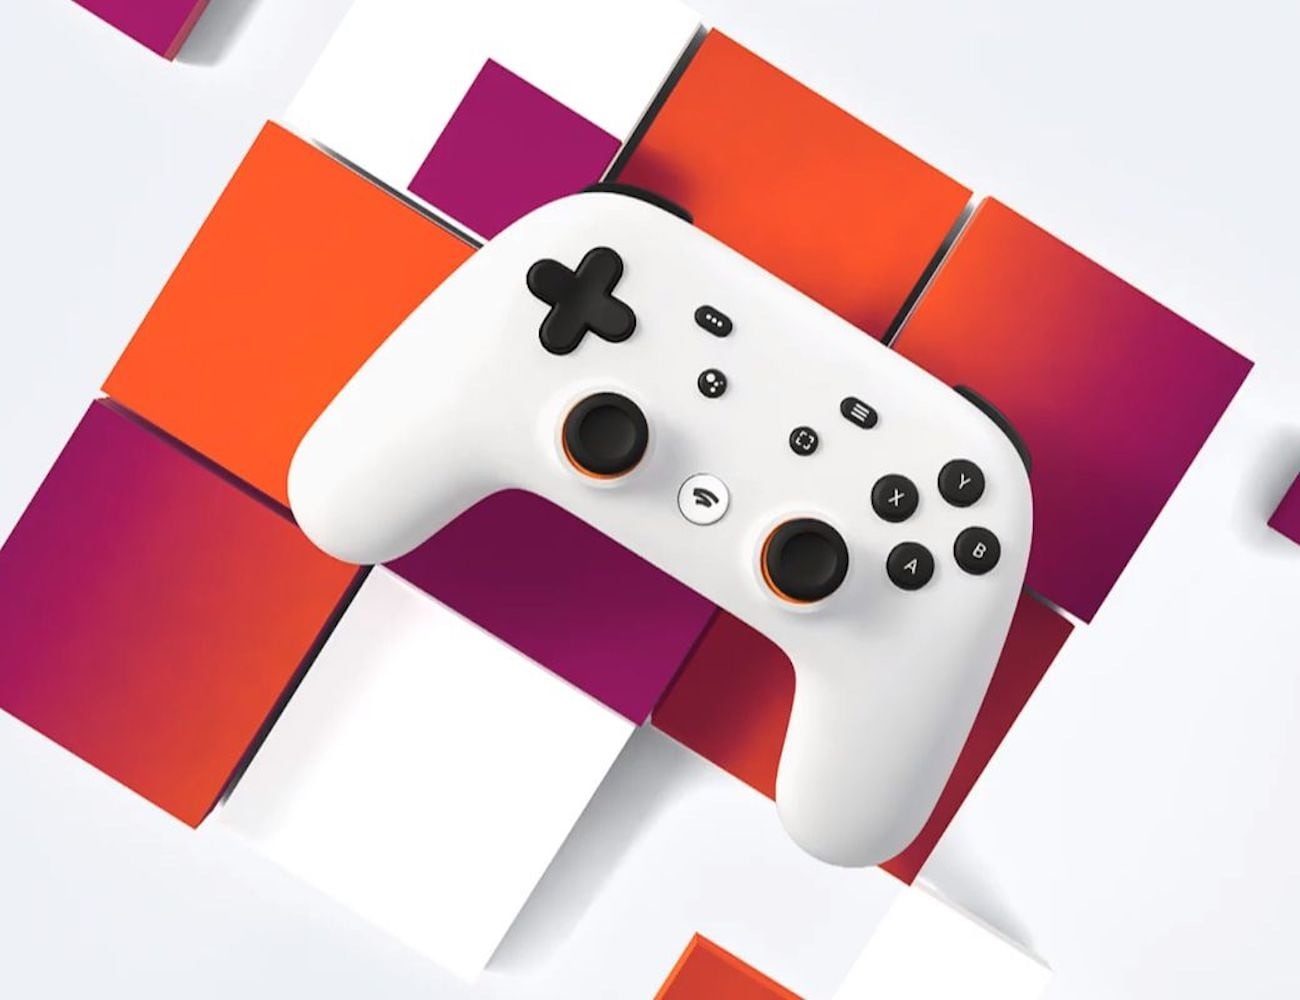 Google Stadia Game Controller puts you in charge of your streaming experience